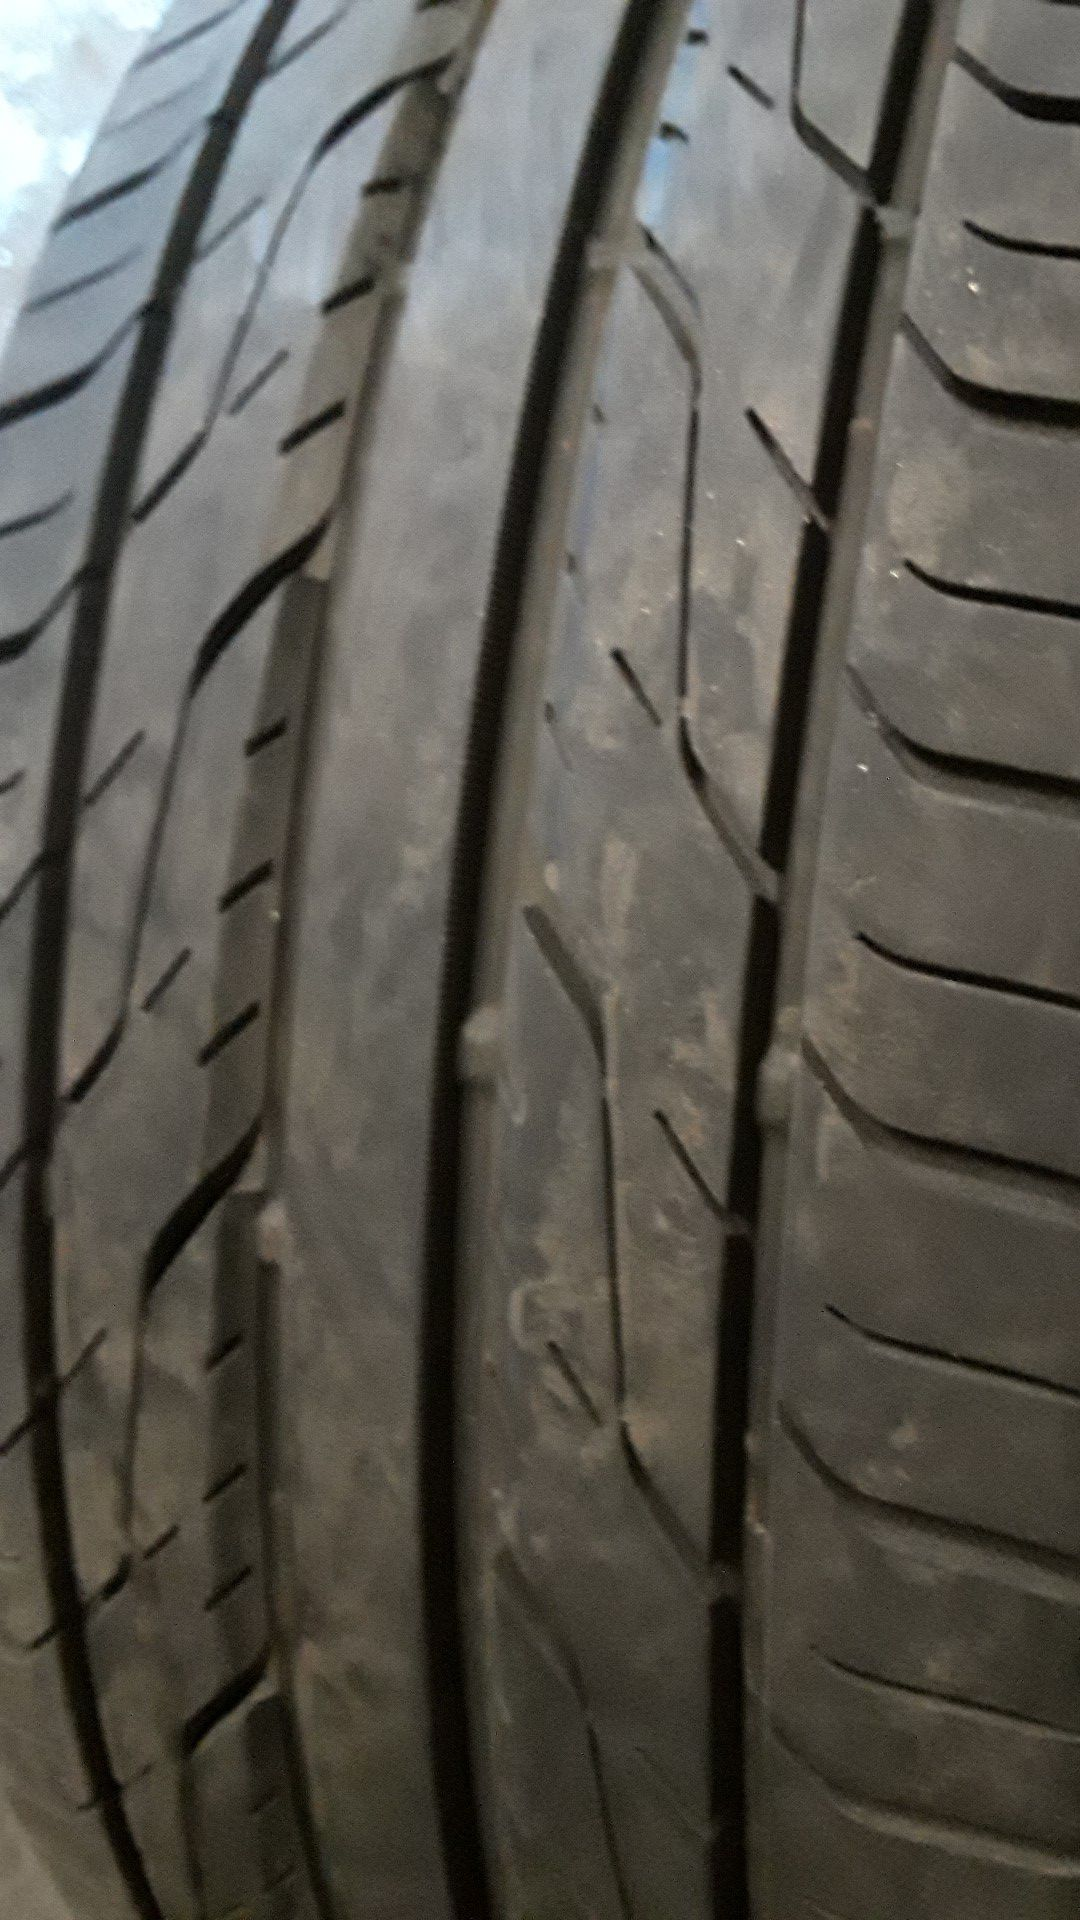 205 50 r17 (?) Good used tires